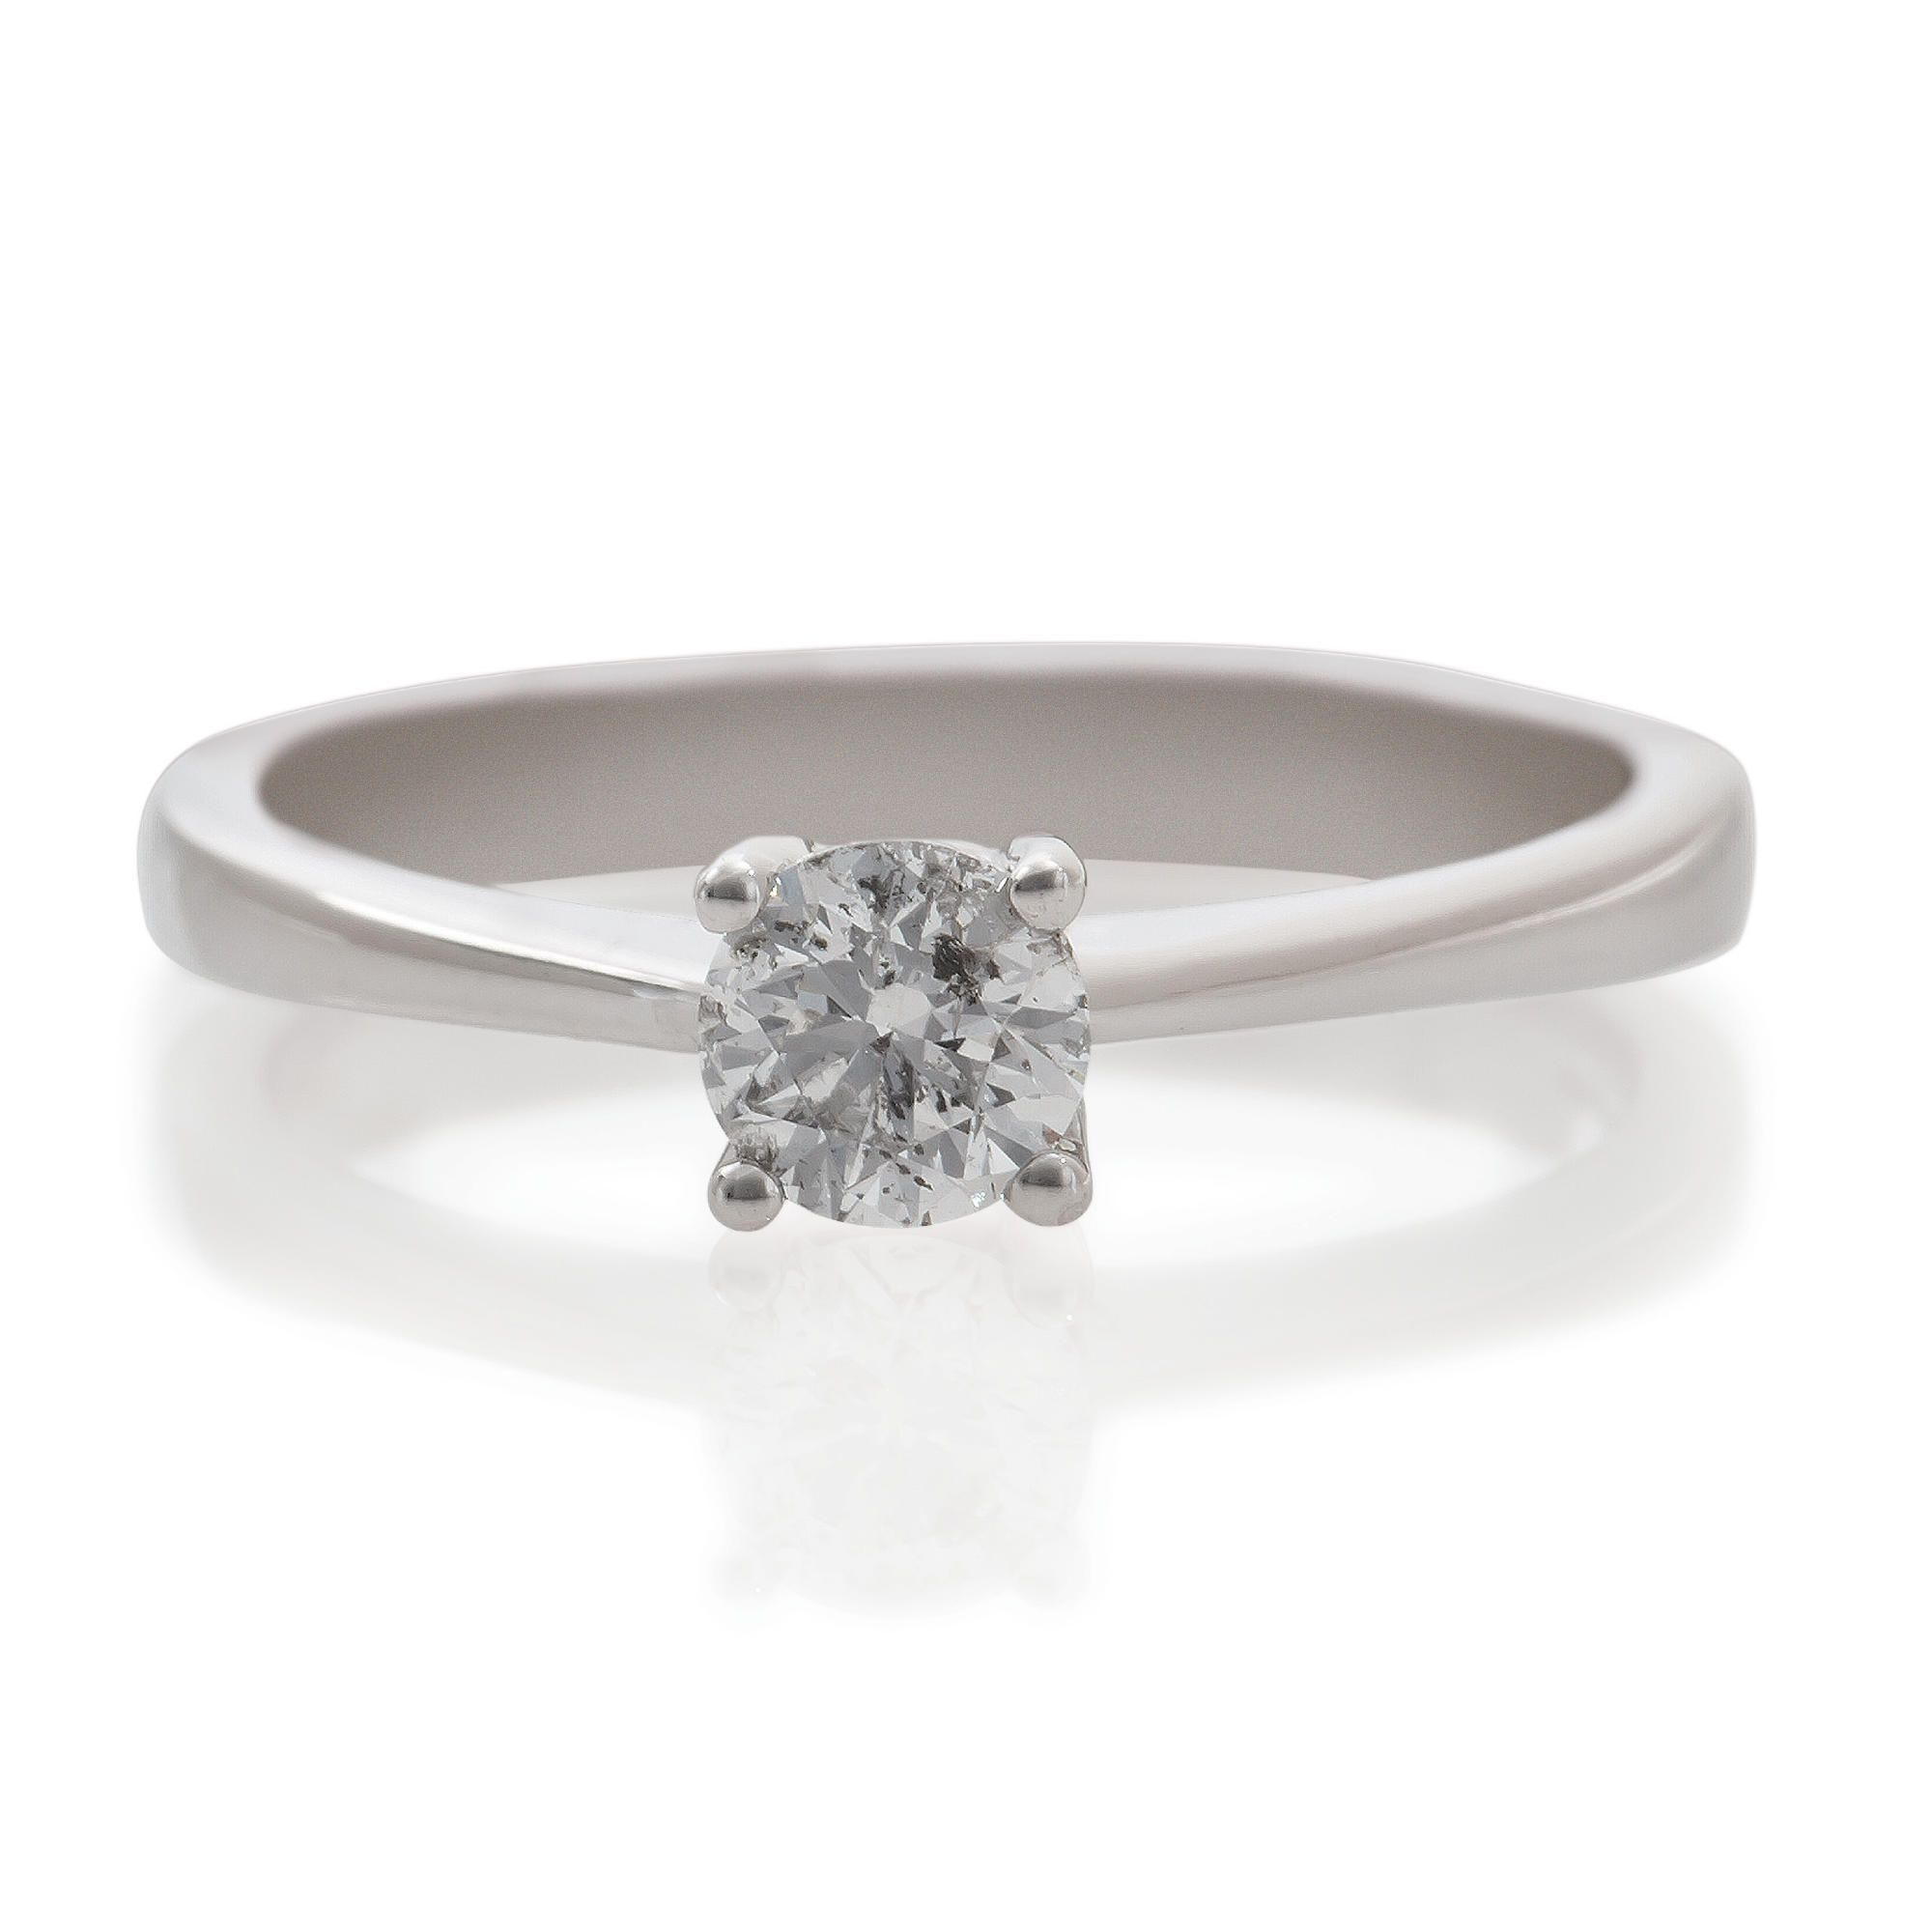 9ct White Gold 1/2ct Diamond Solitaire Ring, N at Tesco Direct